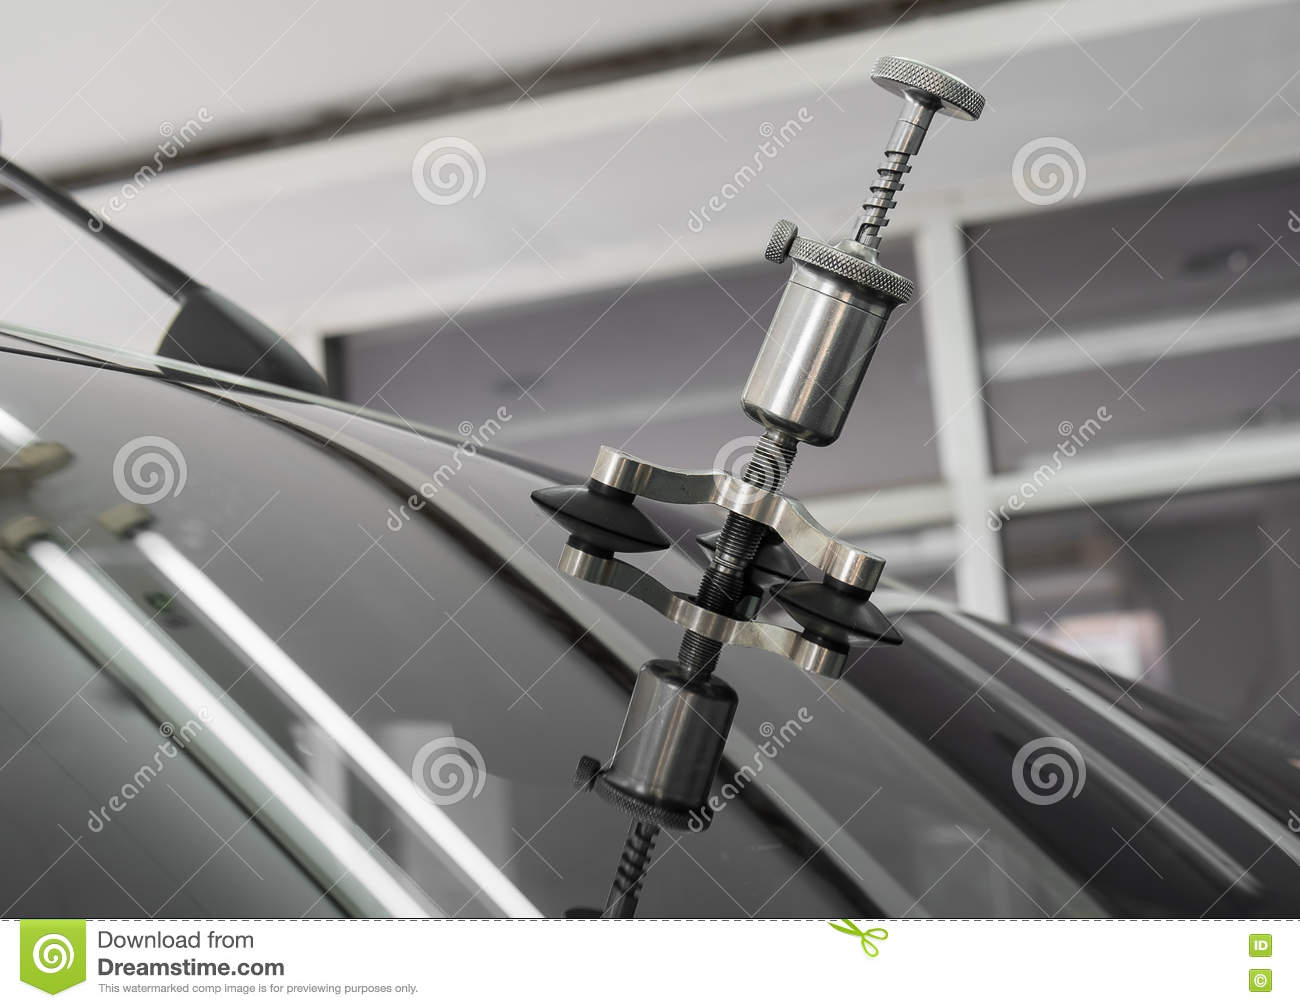 Repairing equipment for fixing of damaged windshield